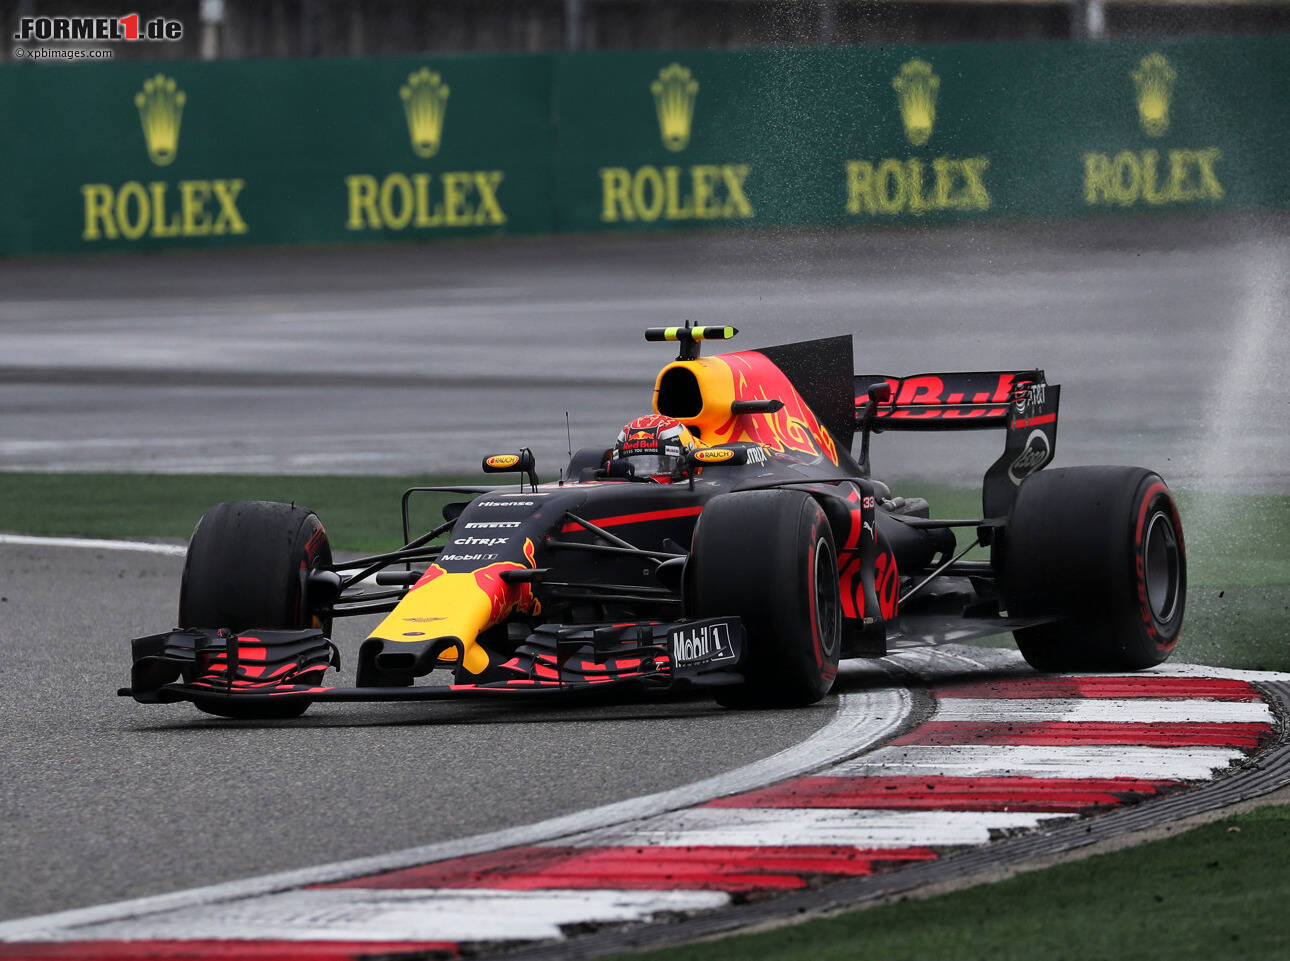 eine wucht red bull schw rmt von max verstappen gala. Black Bedroom Furniture Sets. Home Design Ideas